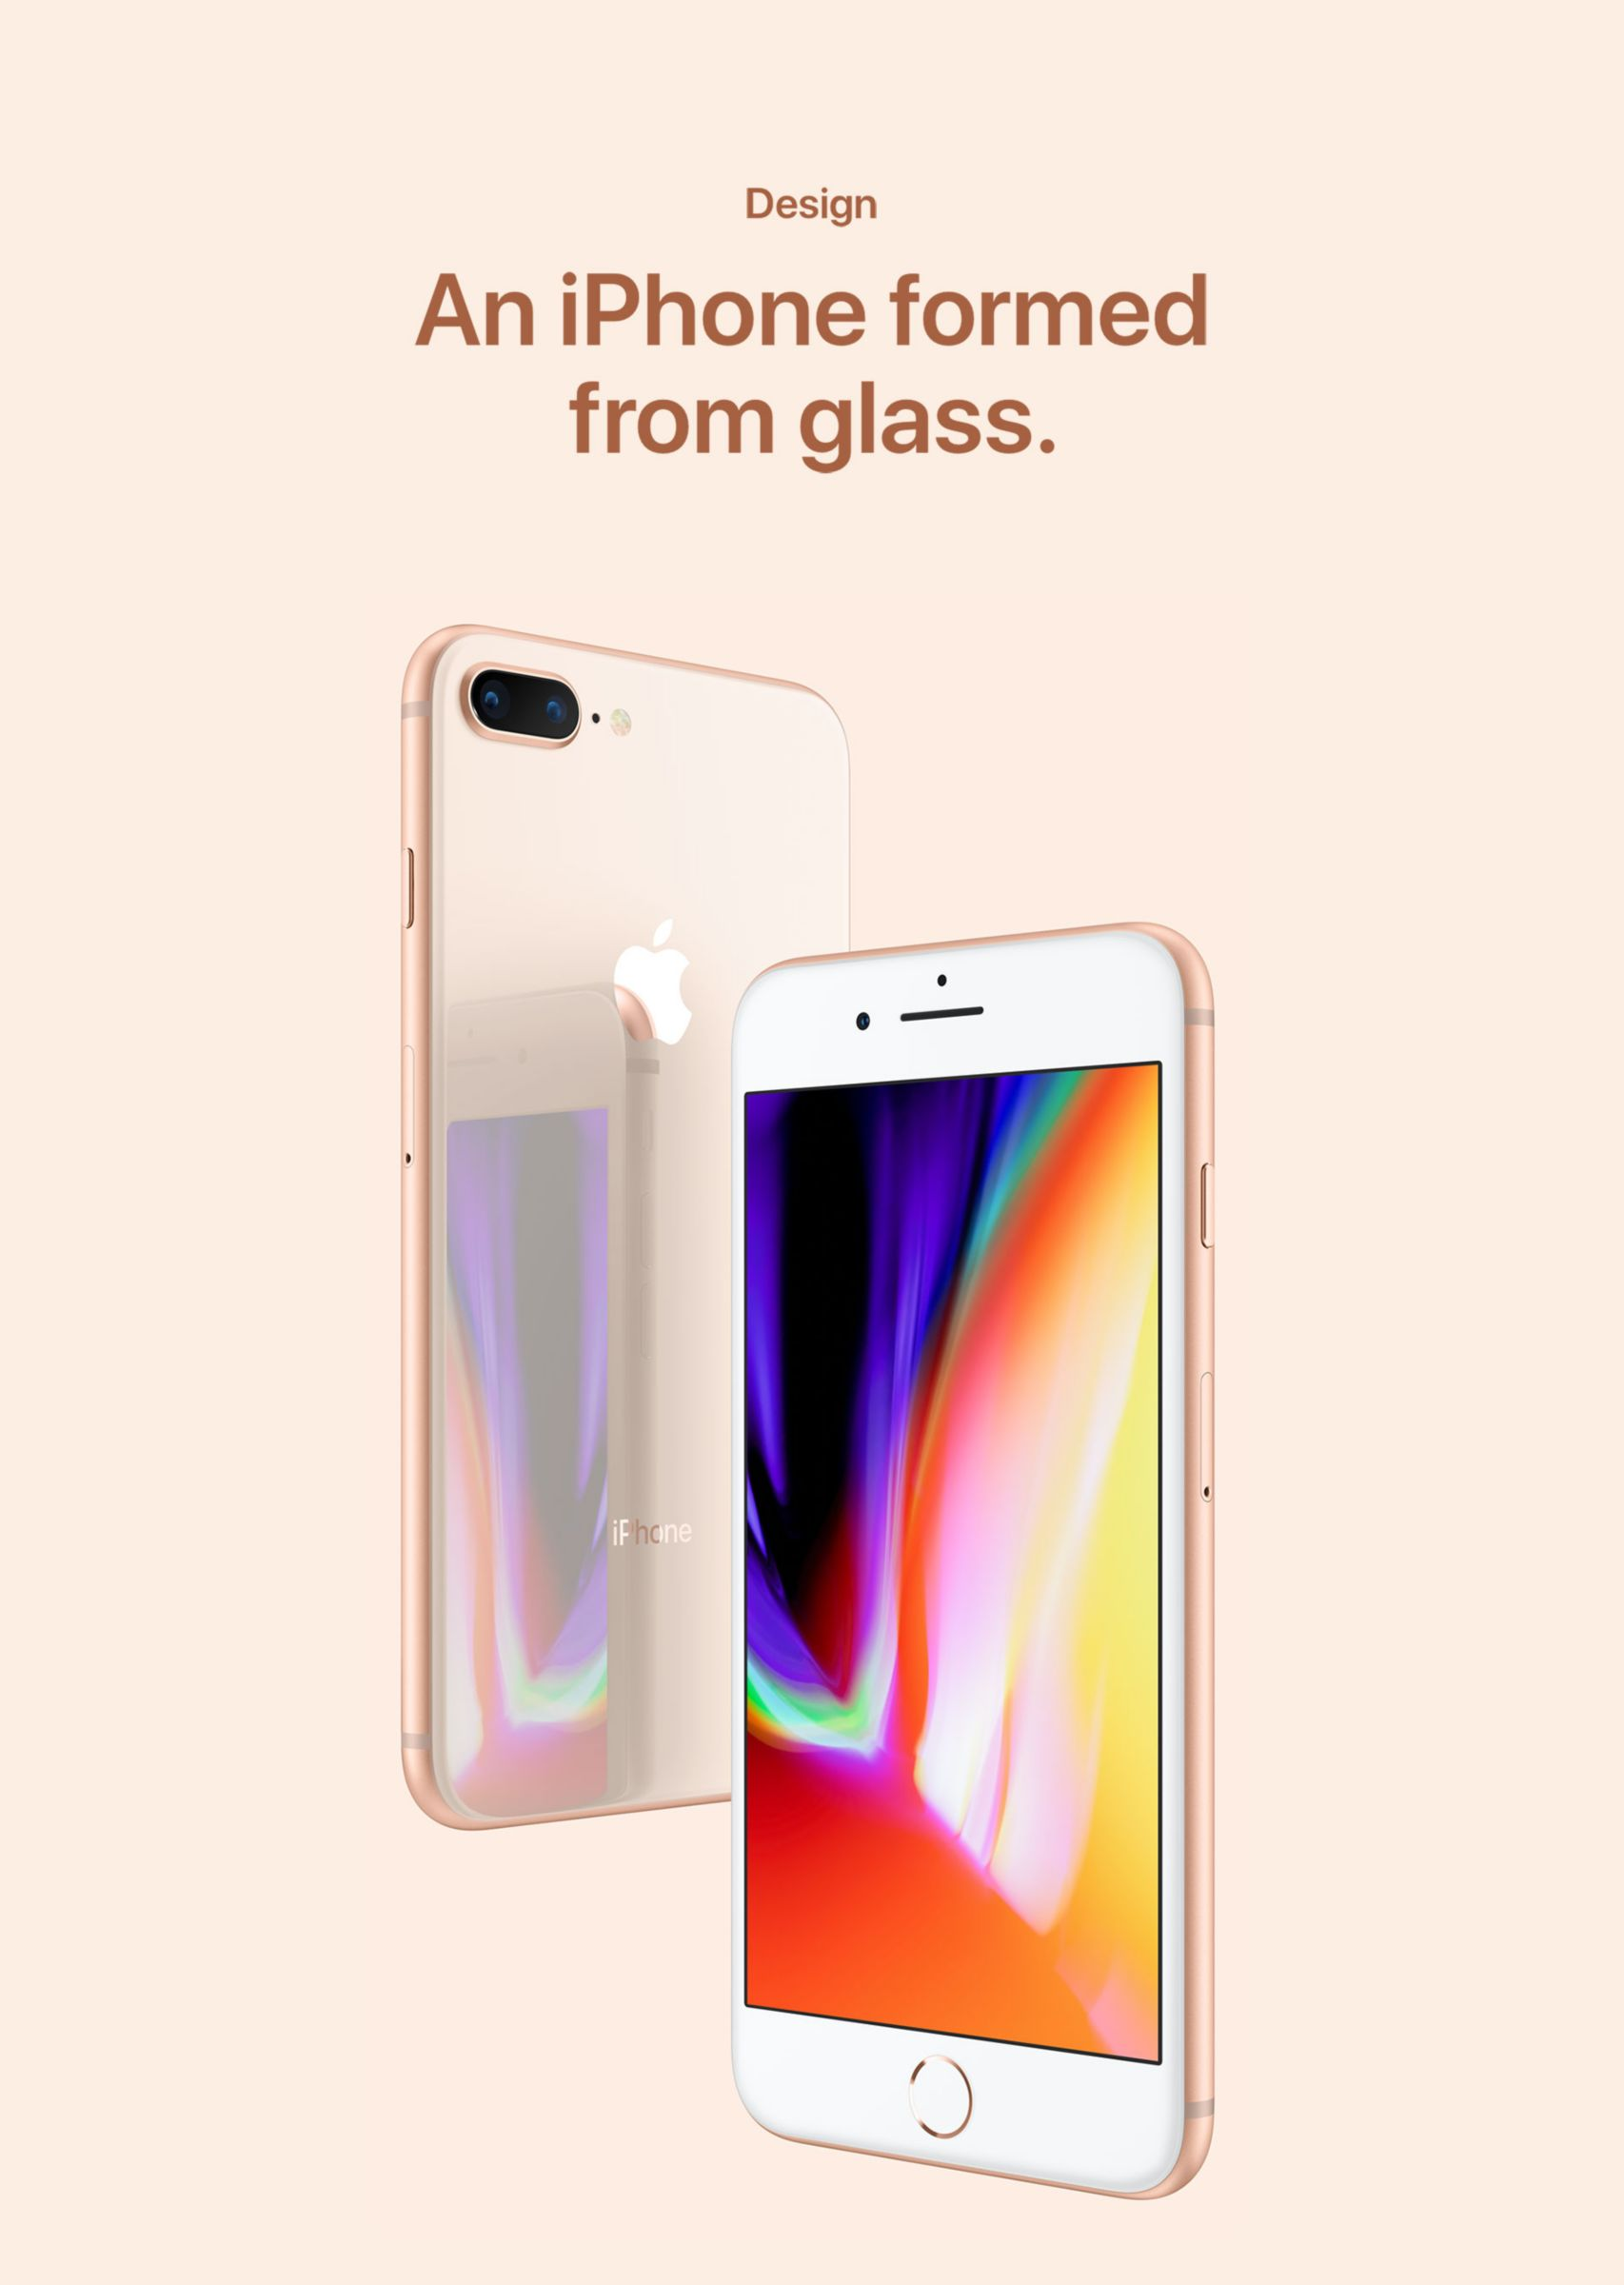 Design - An iPhone formed from glass.